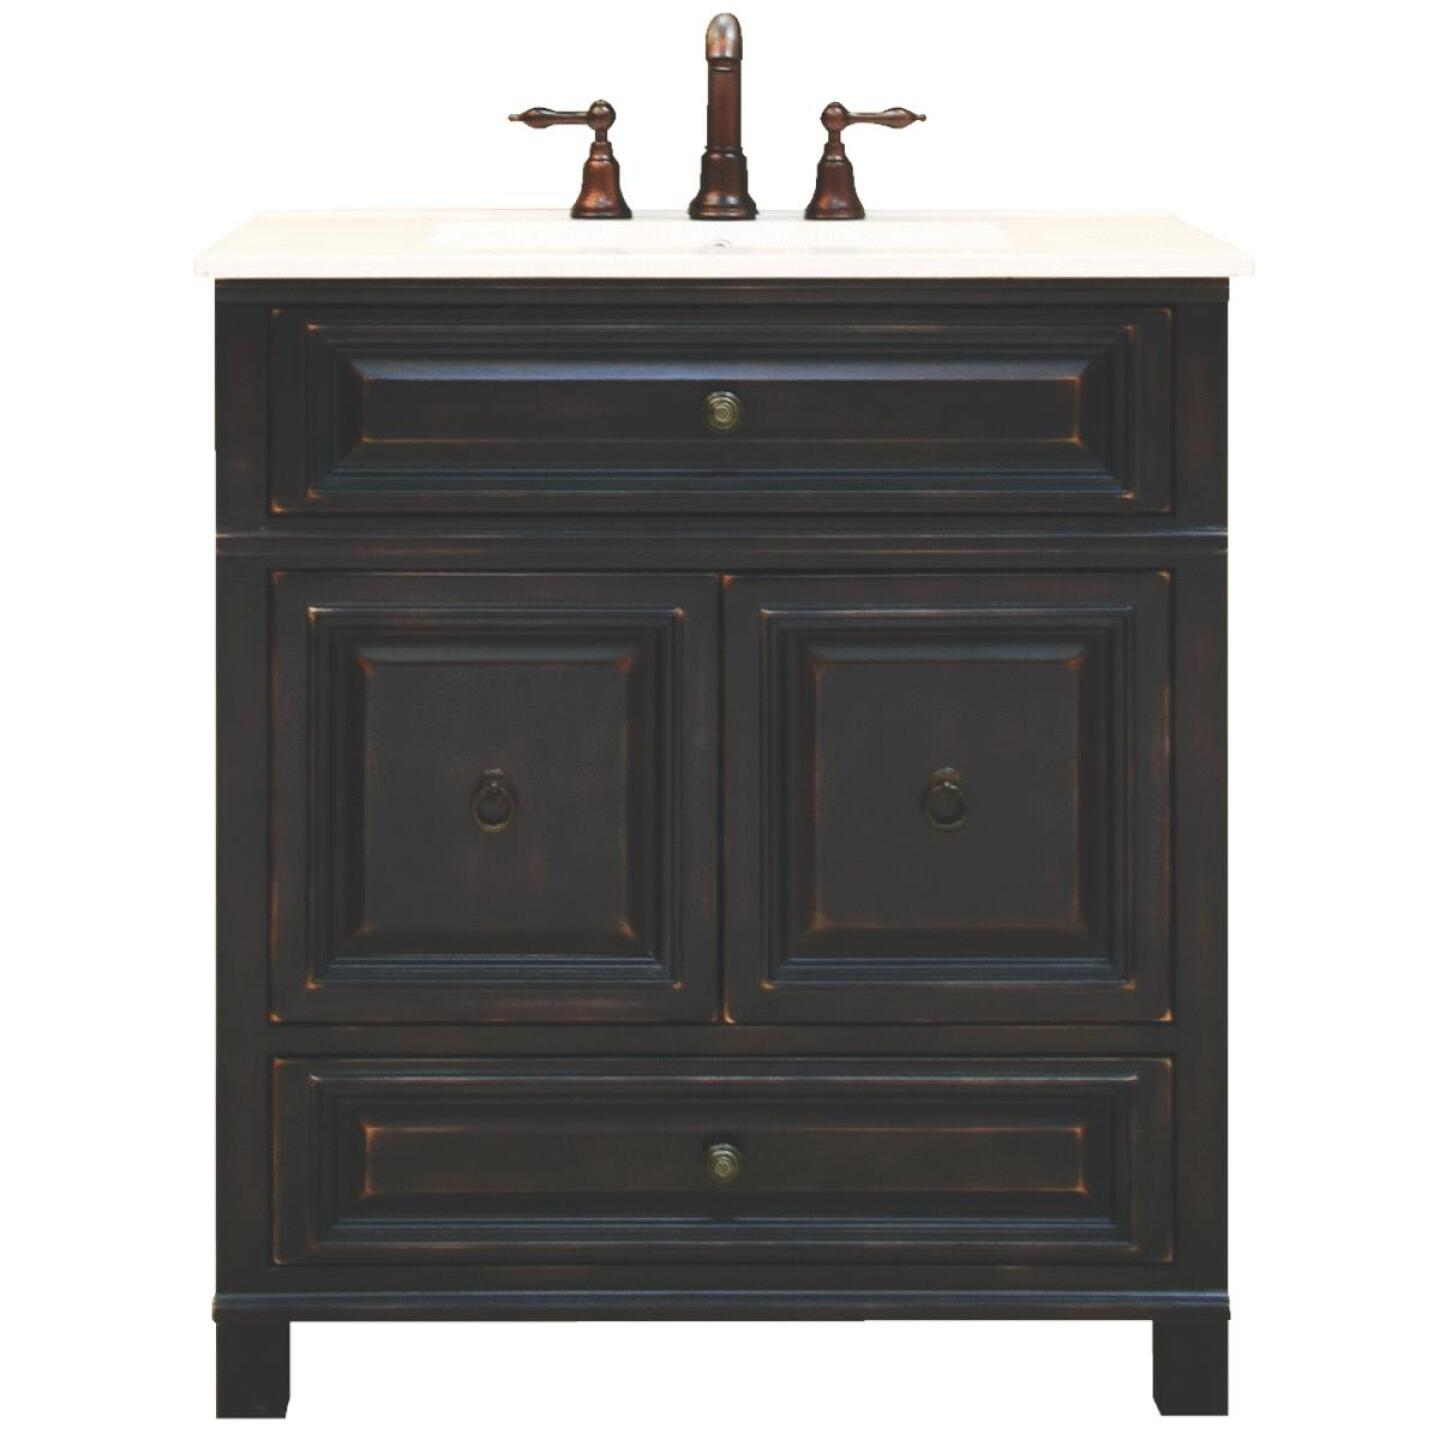 Sunny Wood Barton Hill Black Onyx 30 In. W x 34 In. H x 21 In. D Vanity Base, 2 Door/1 Drawer Image 104